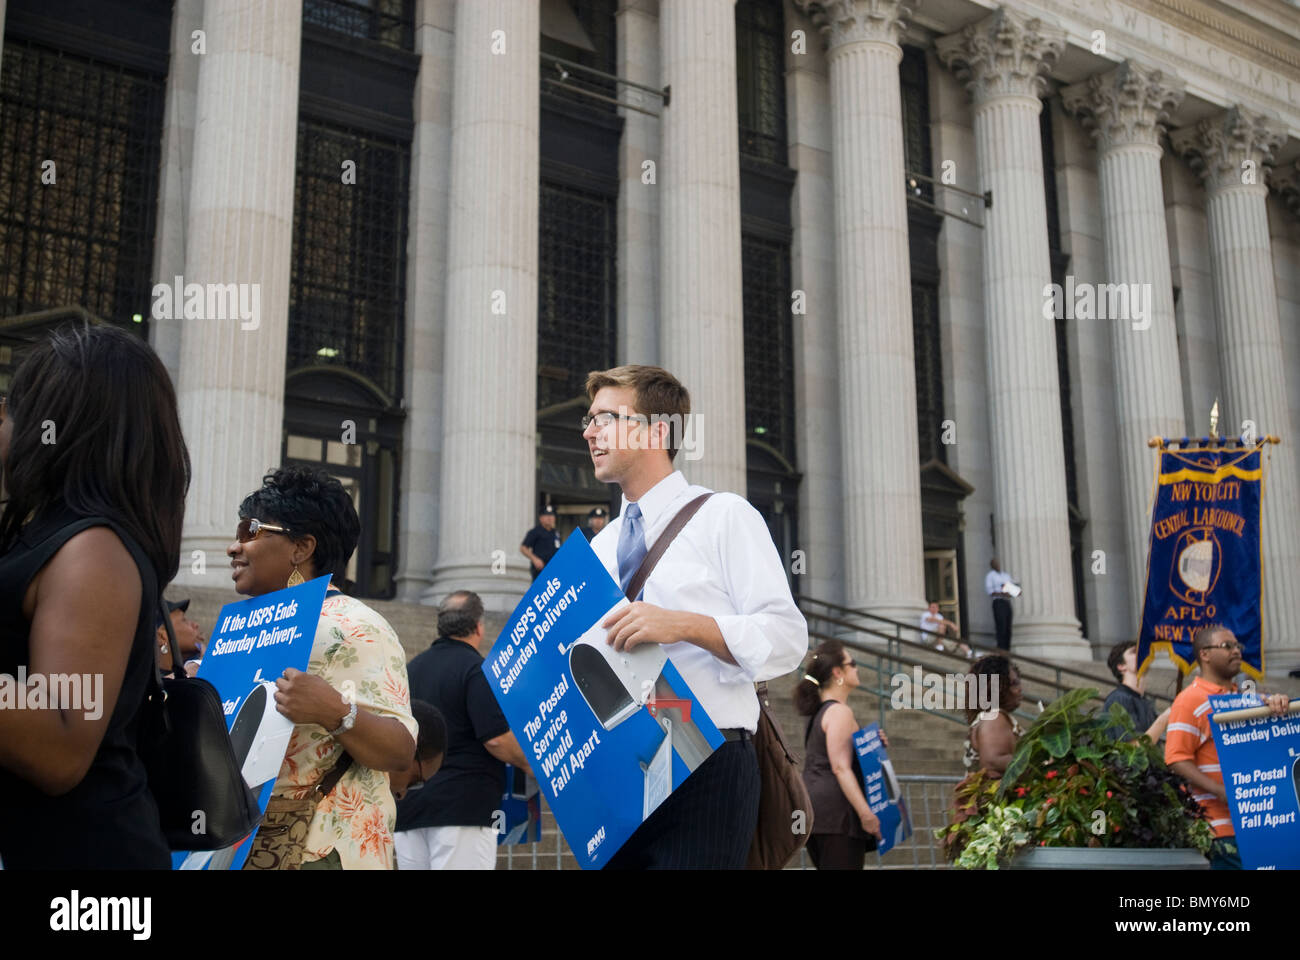 Postal workers rally in front of the James Farley Post Office in New York demanding continuation of Saturday delivery - Stock Image